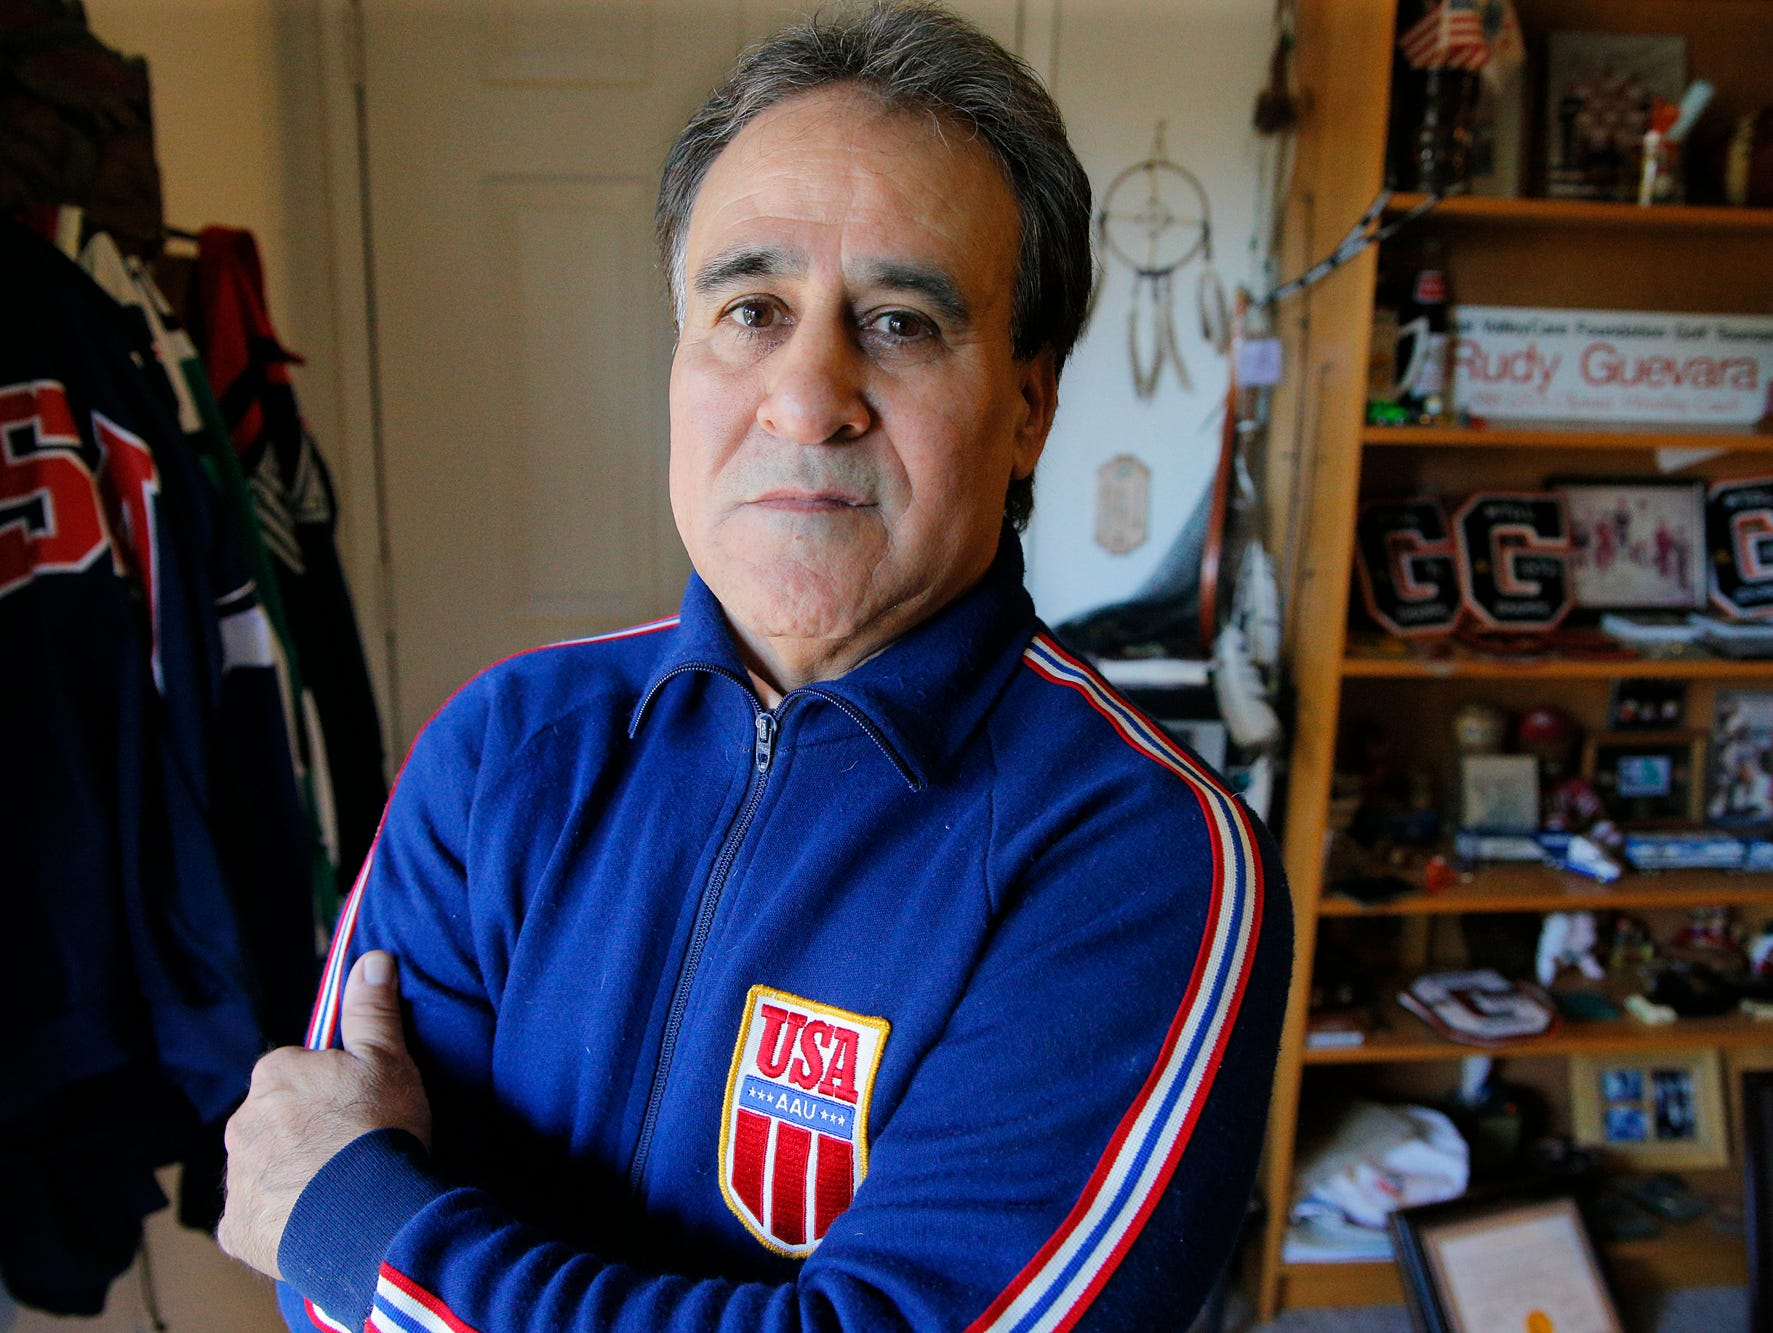 Rudy Guevara, who wrestled at Gonzeles High School and San Jose State University in the 1970s, recently received the Lifetime Service to Wrestling Award from the National Wrestling Hall of Fame. Guevara coached the Olympic Wrestling Team at the 1988 Summer Olympics.